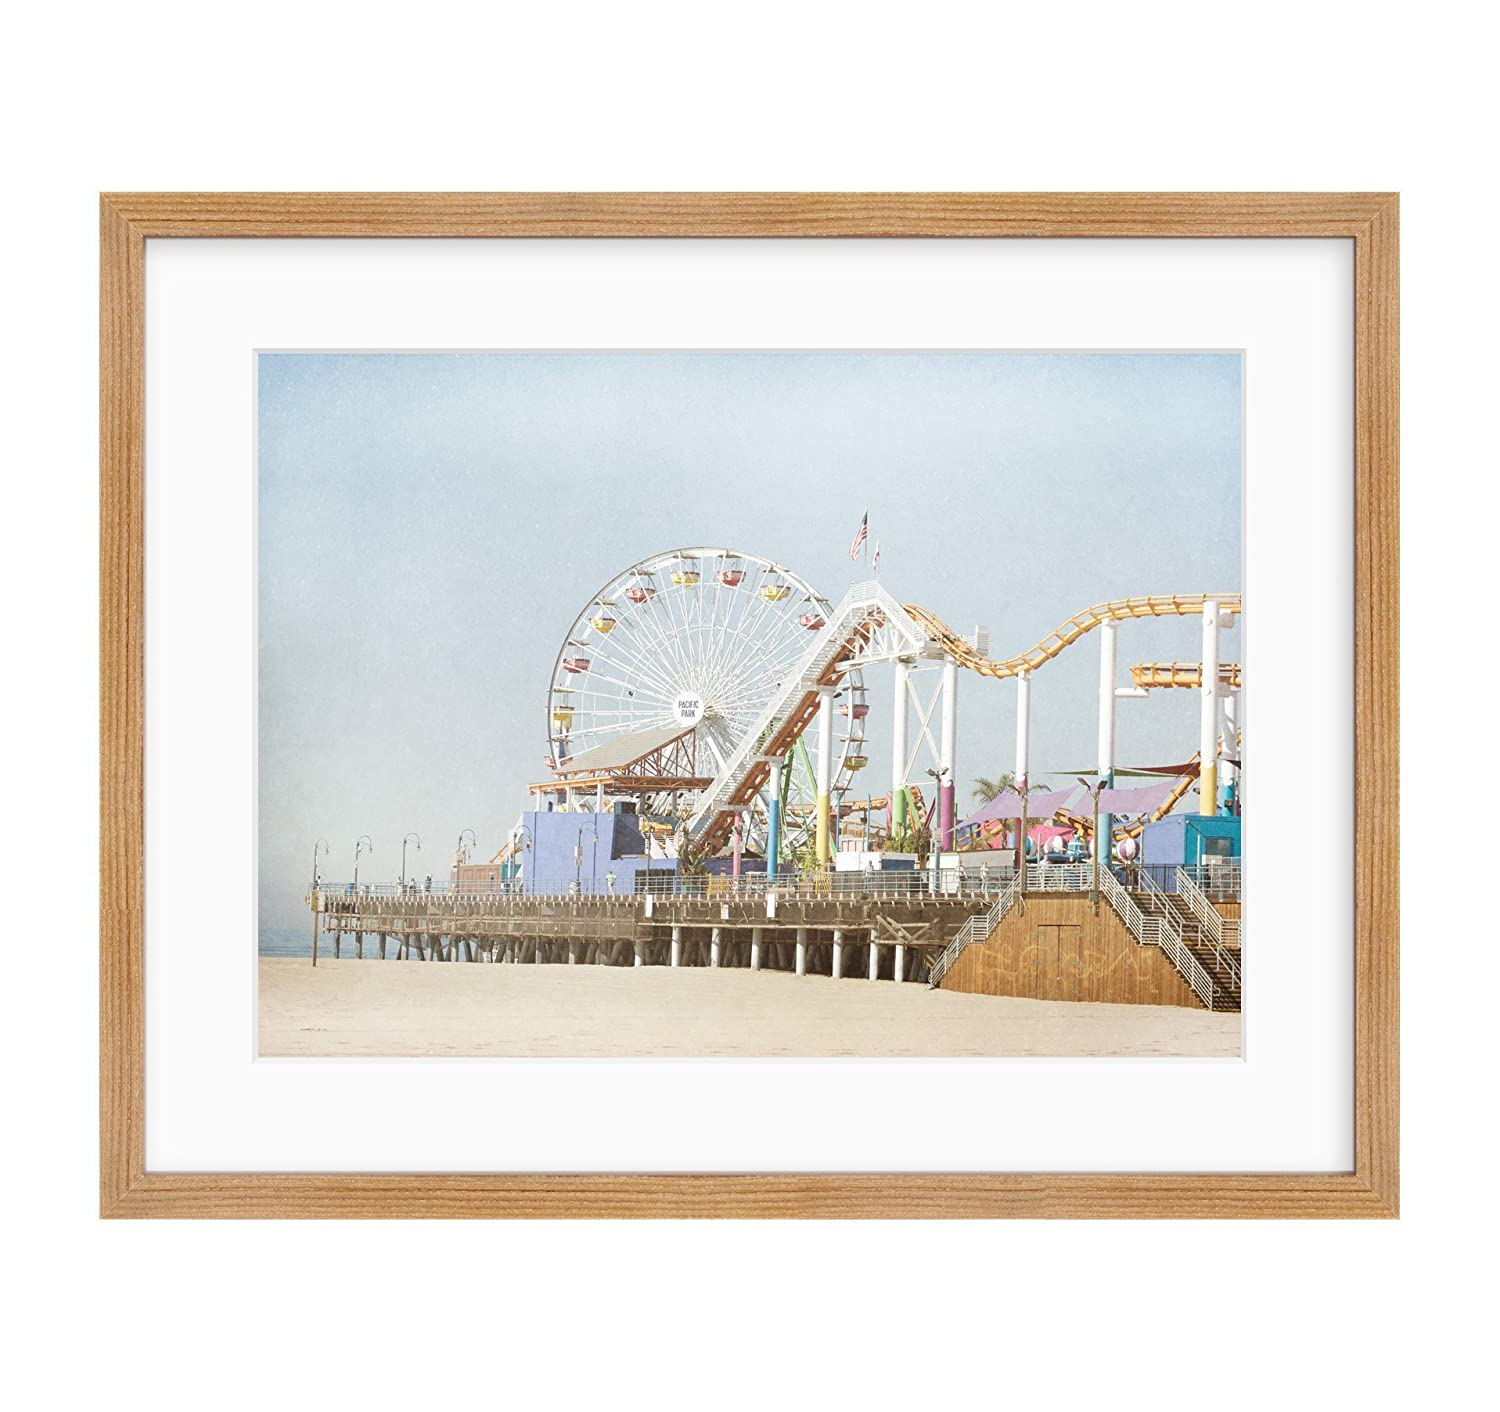 Framed Photographic Print, Santa Monica Wall Art, California Coastal Beach Landscape Decor, Santa Monica Pier' Santa Monica Pier'